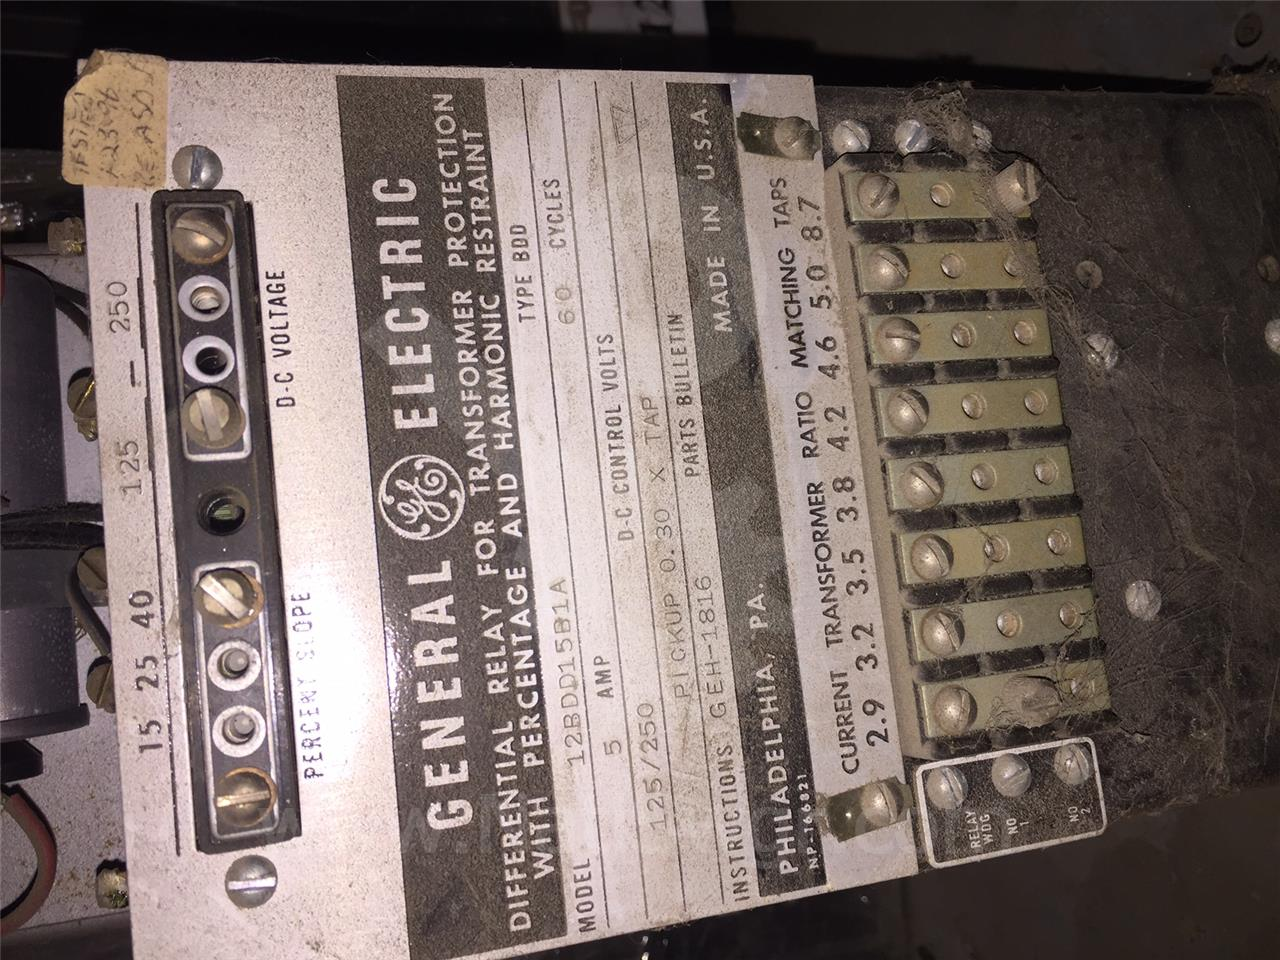 General Electric Ge Bdd Transformer Differential Relay Electromagnetic Computer